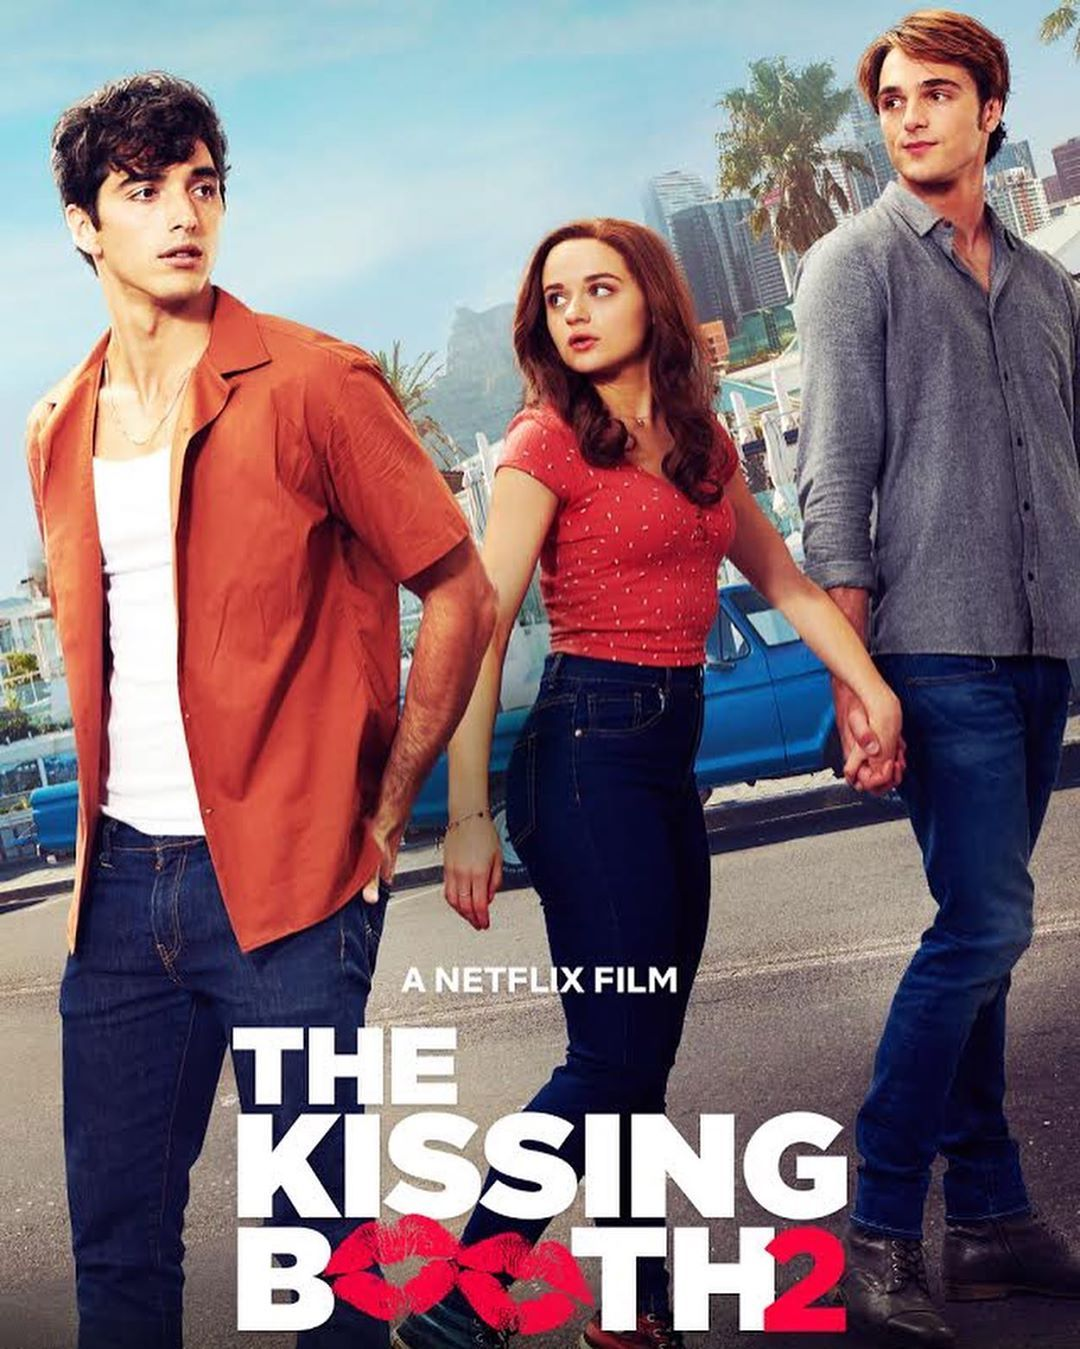 "The Kissing Booth Streaming : kissing, booth, streaming, TAYLOR, ZAKHAR, PEREZ, Instagram:, ""KISSING, BOOTH, STREAMING, NETFLIX!, Let's, Words, Cannot…, Kissing, Booth,, Actors,, Netflix"